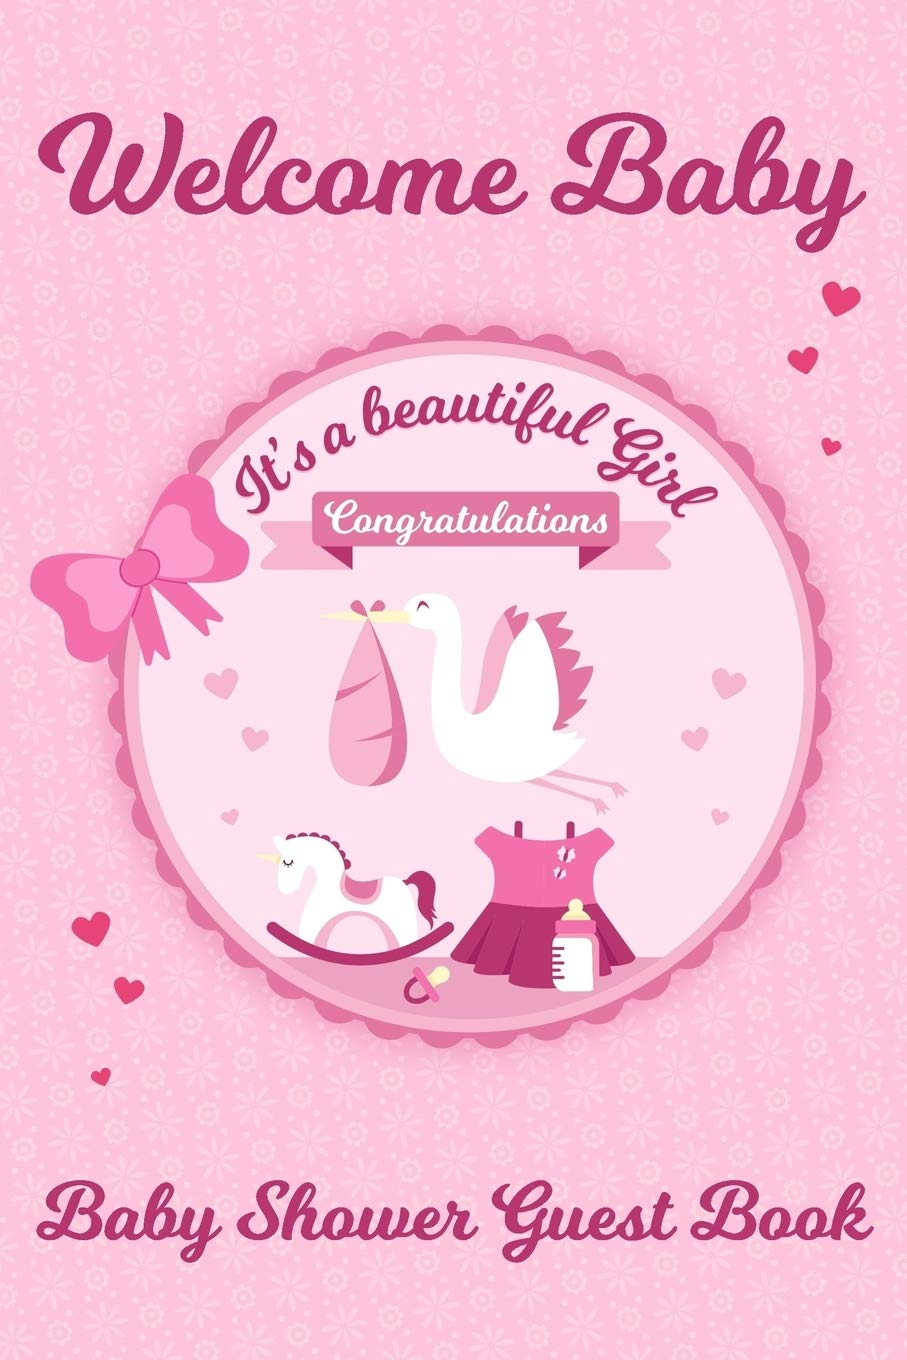 Welcome Baby It S A Beautiful Girl Congratulations Baby Shower Guest Book Keepsake Advice For Expectant Parents And Bonus Gift Log Stork Design Cover Newborn Guestbook Log Baby Journals And Coloring Books